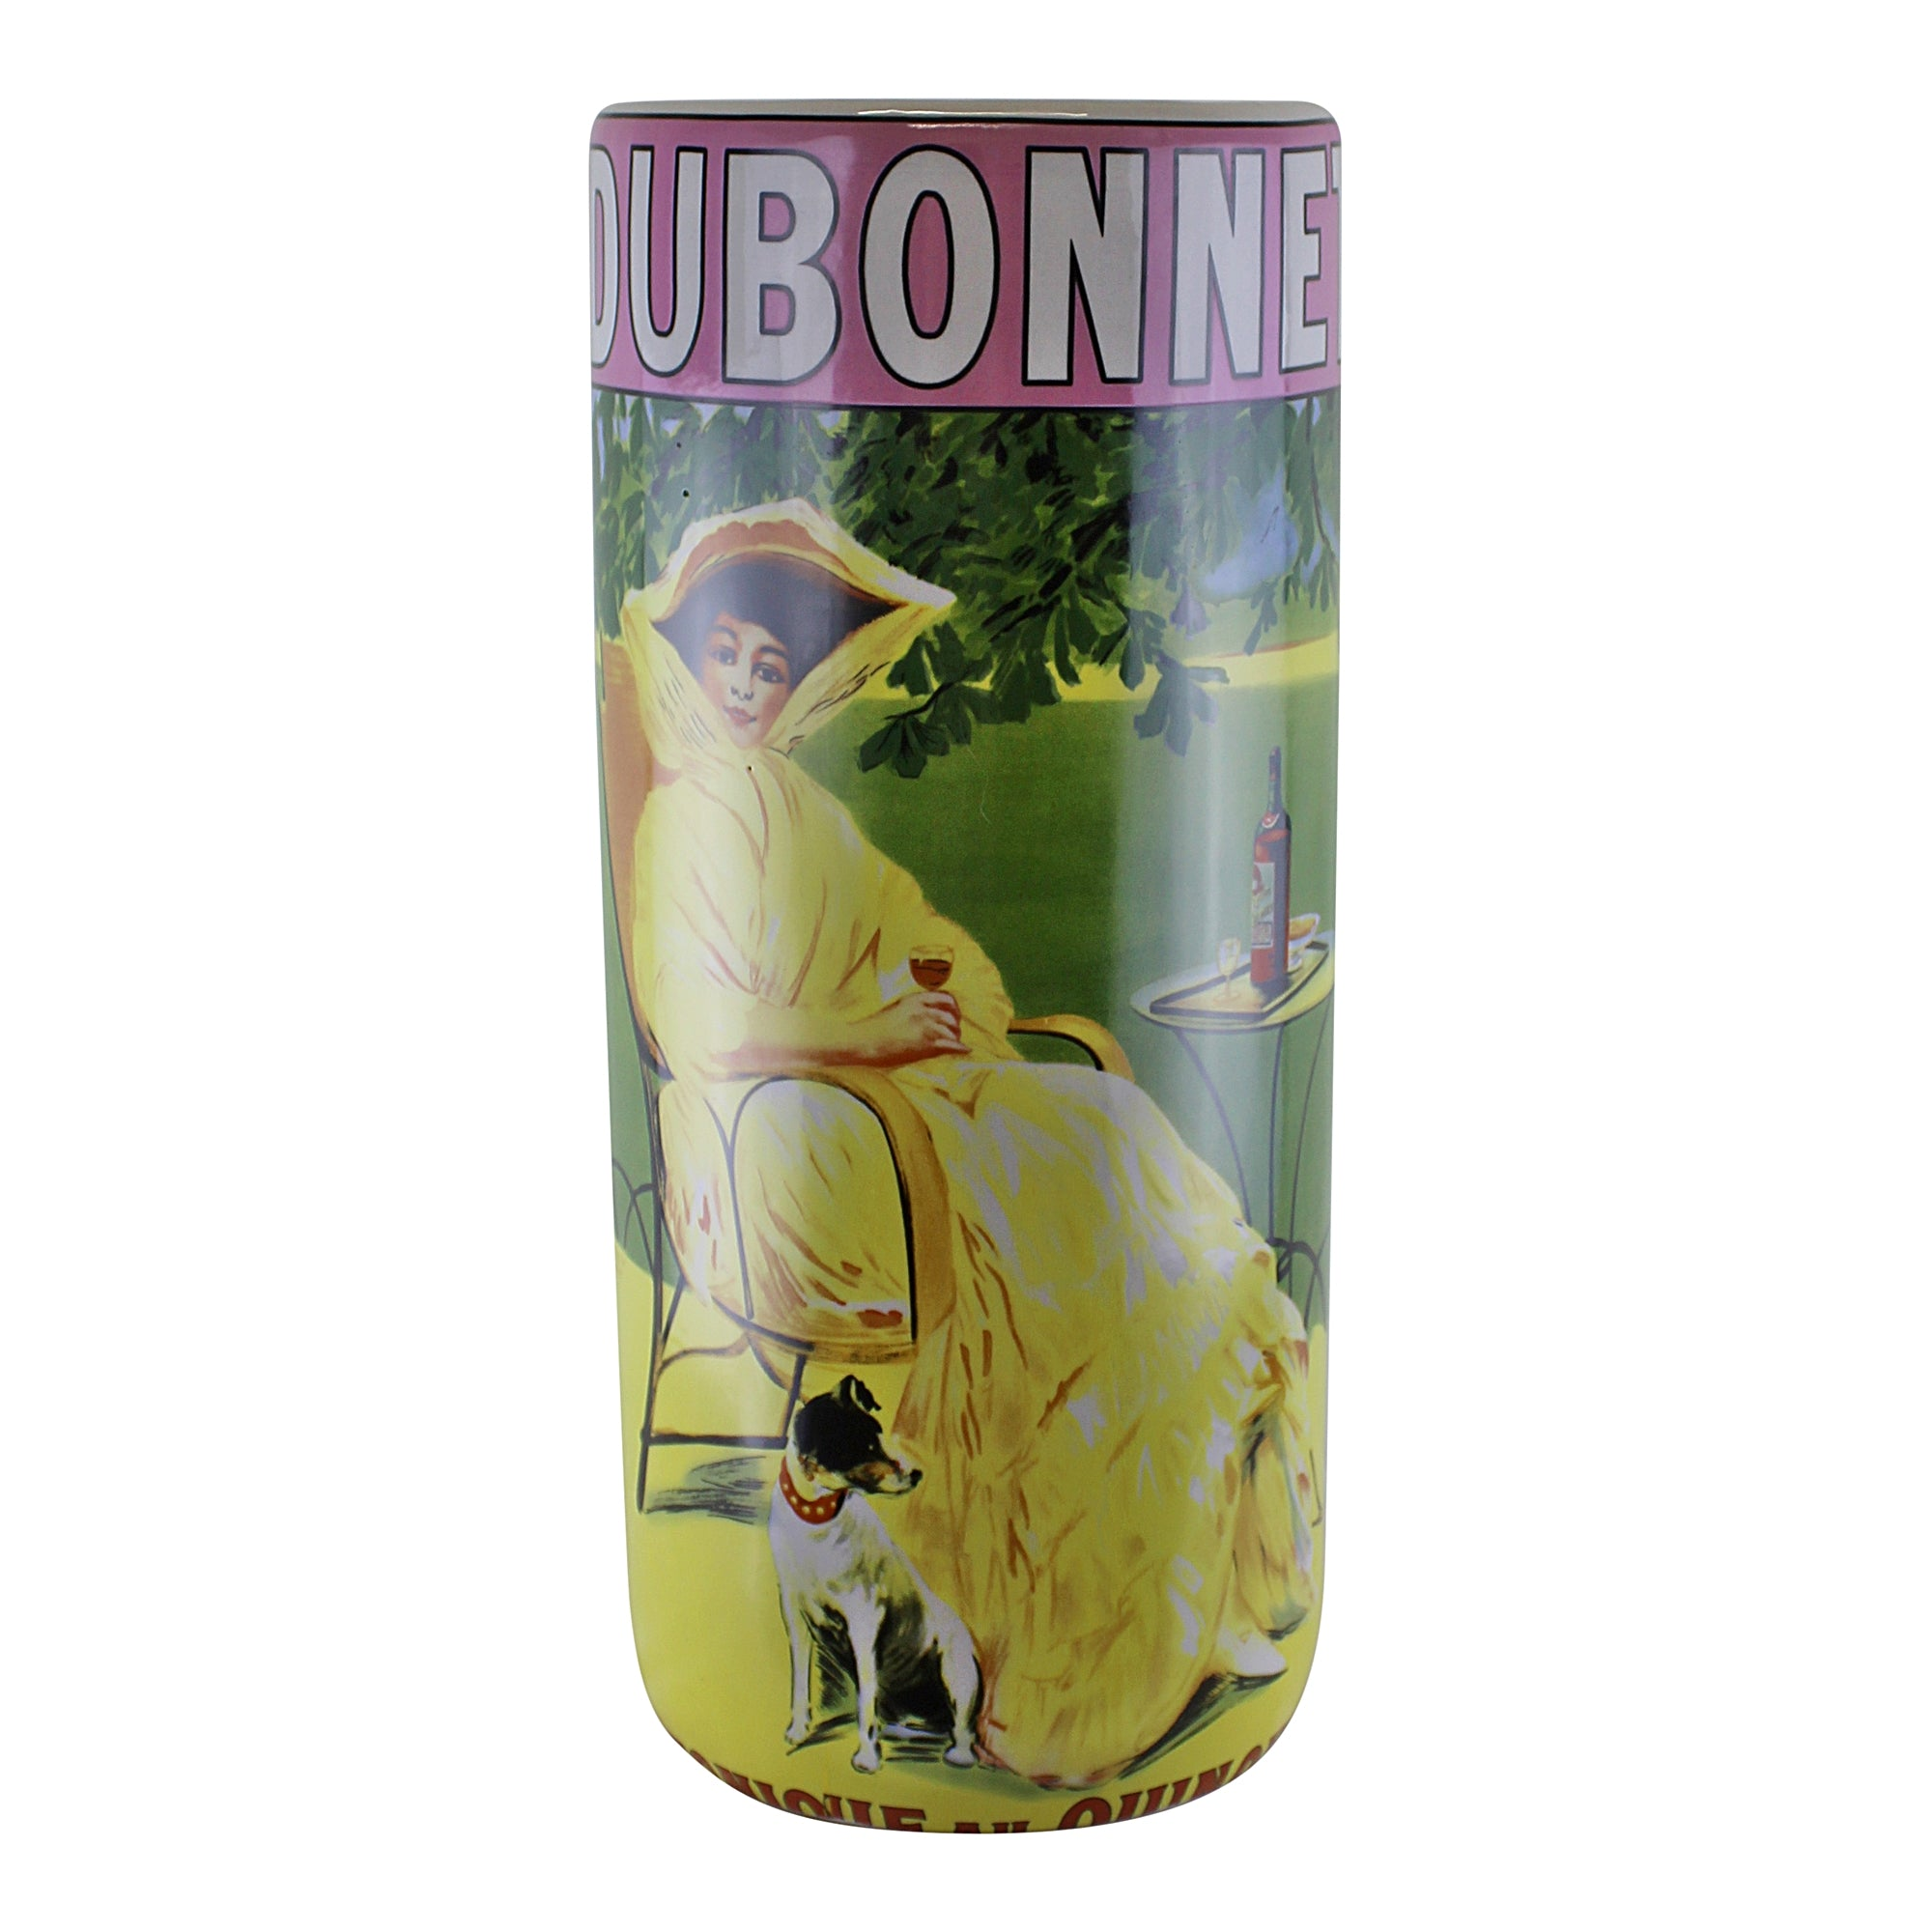 Umbrella Stand, Dubonnet Design With Free Vase, Parasols & Rain Umbrellas by Low Cost Gifts